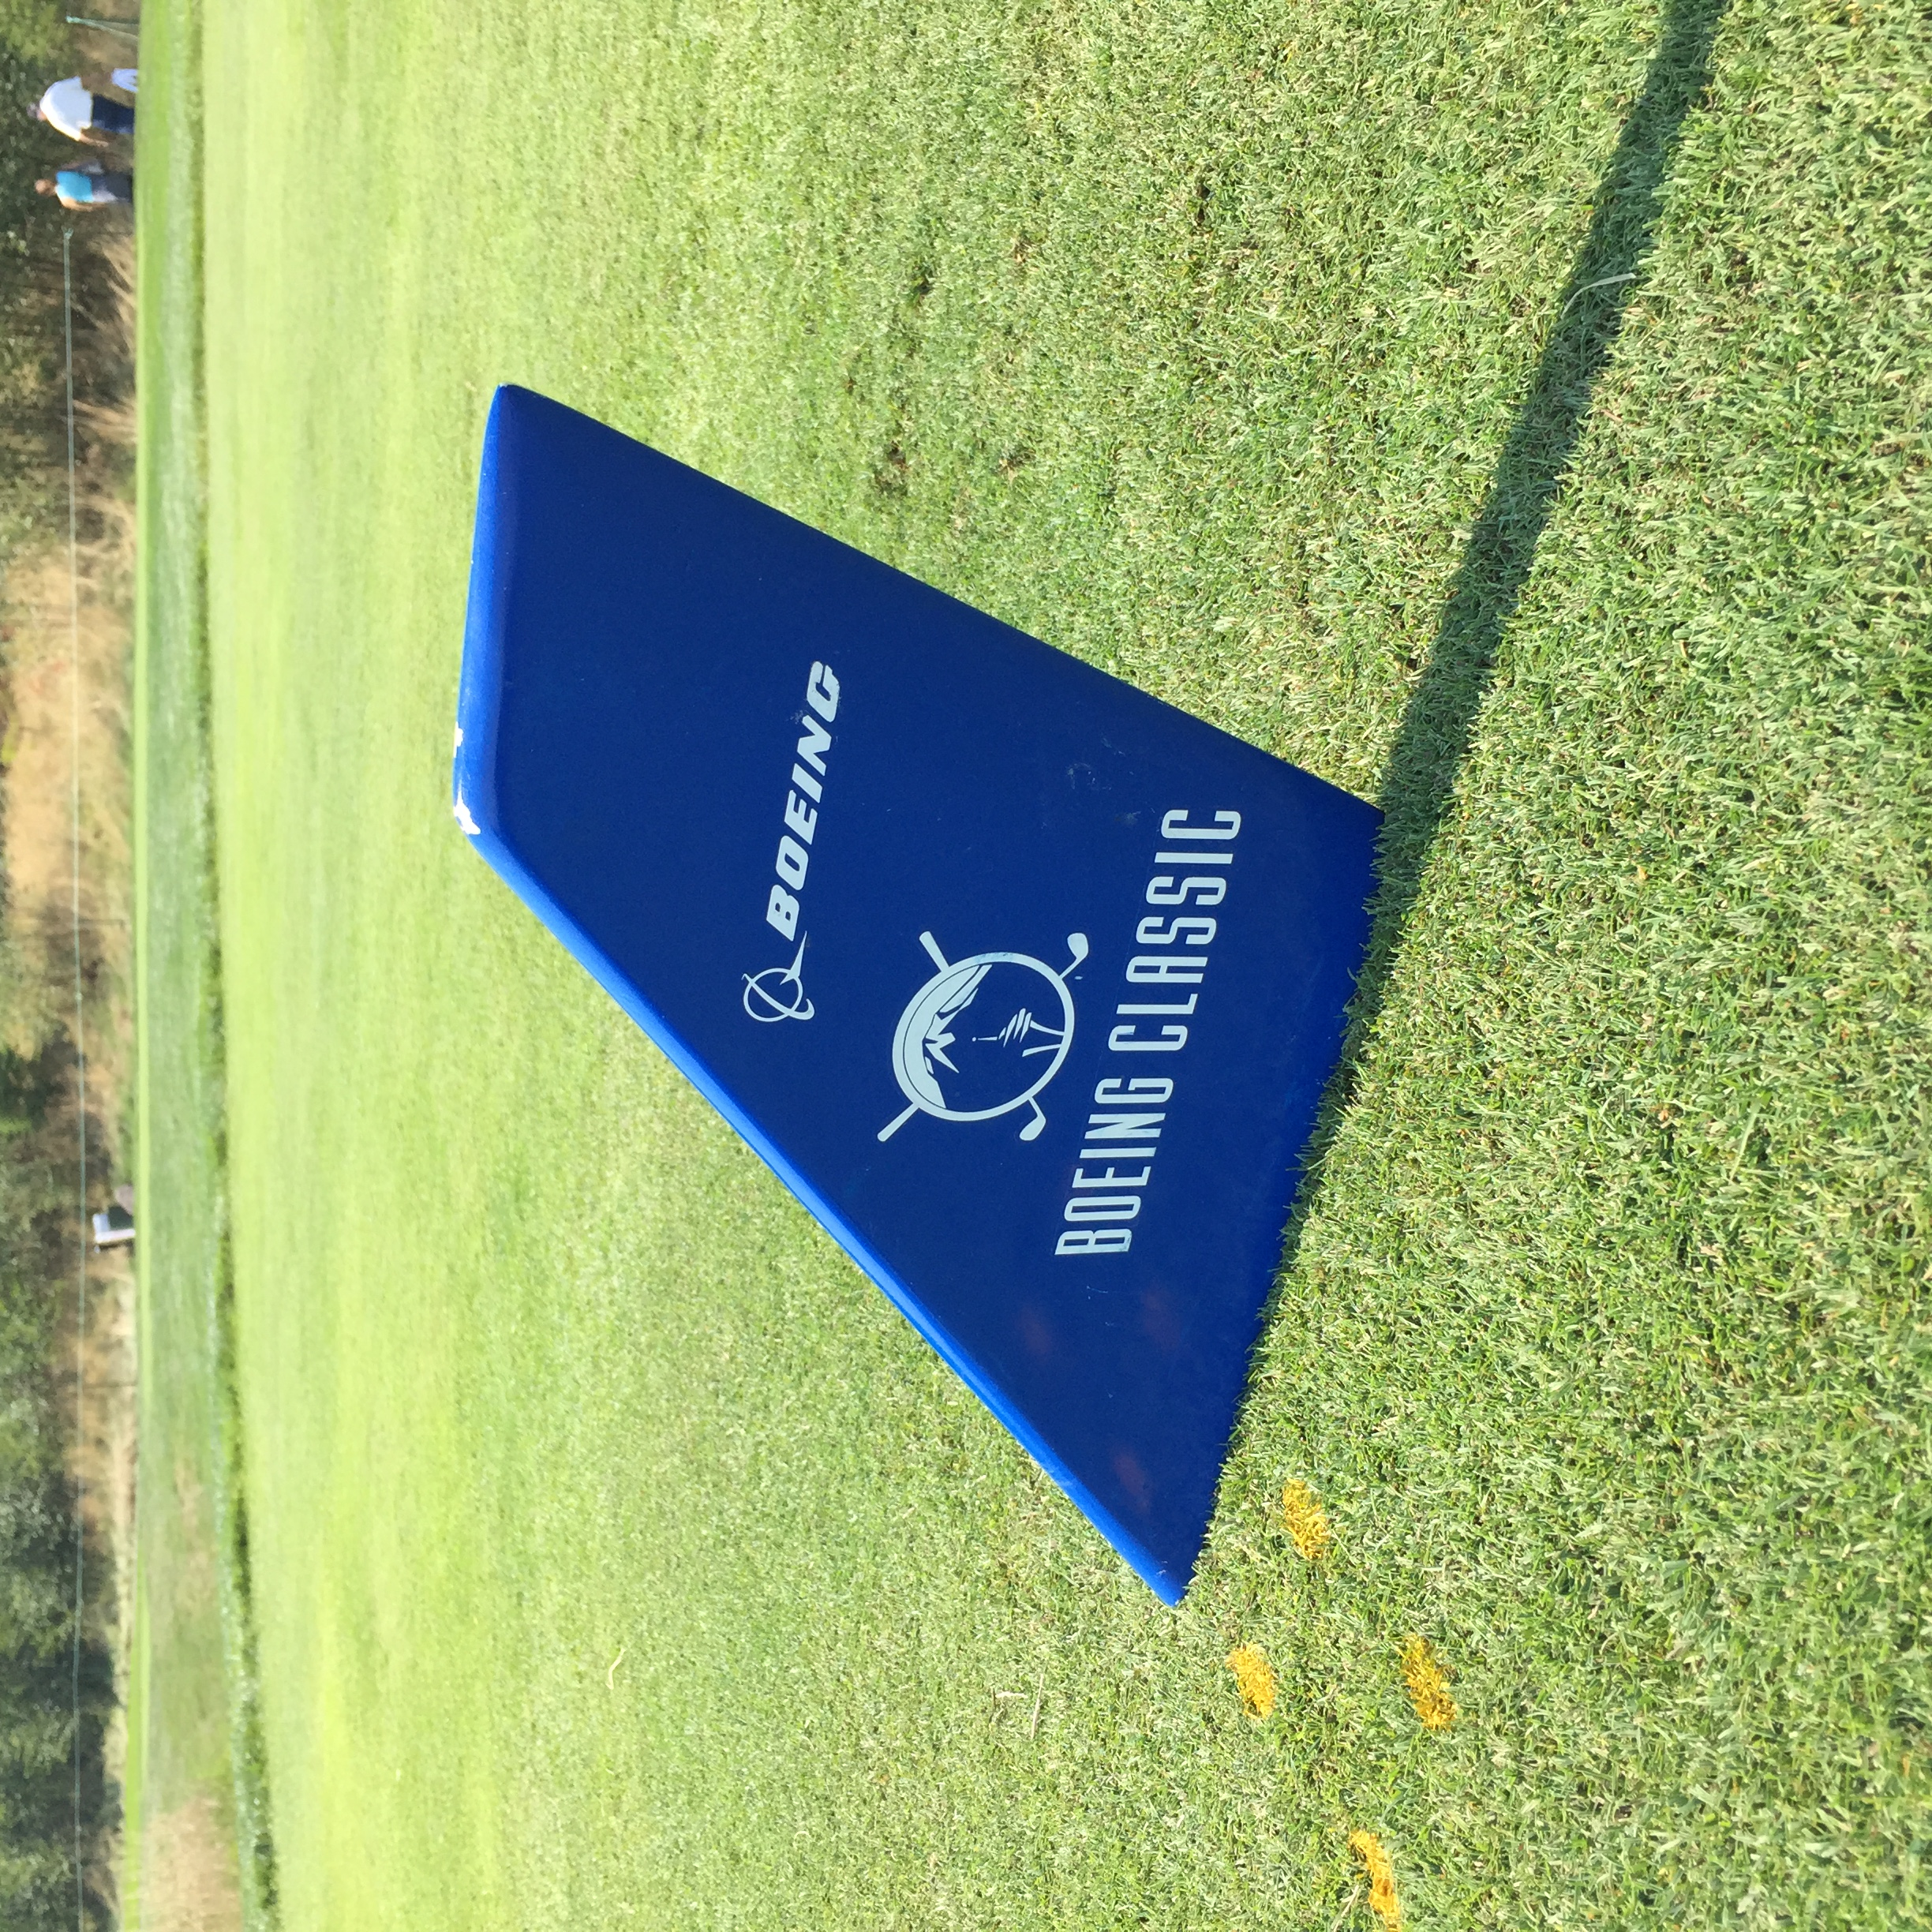 The tee markers for the Boeing Classic are classic.